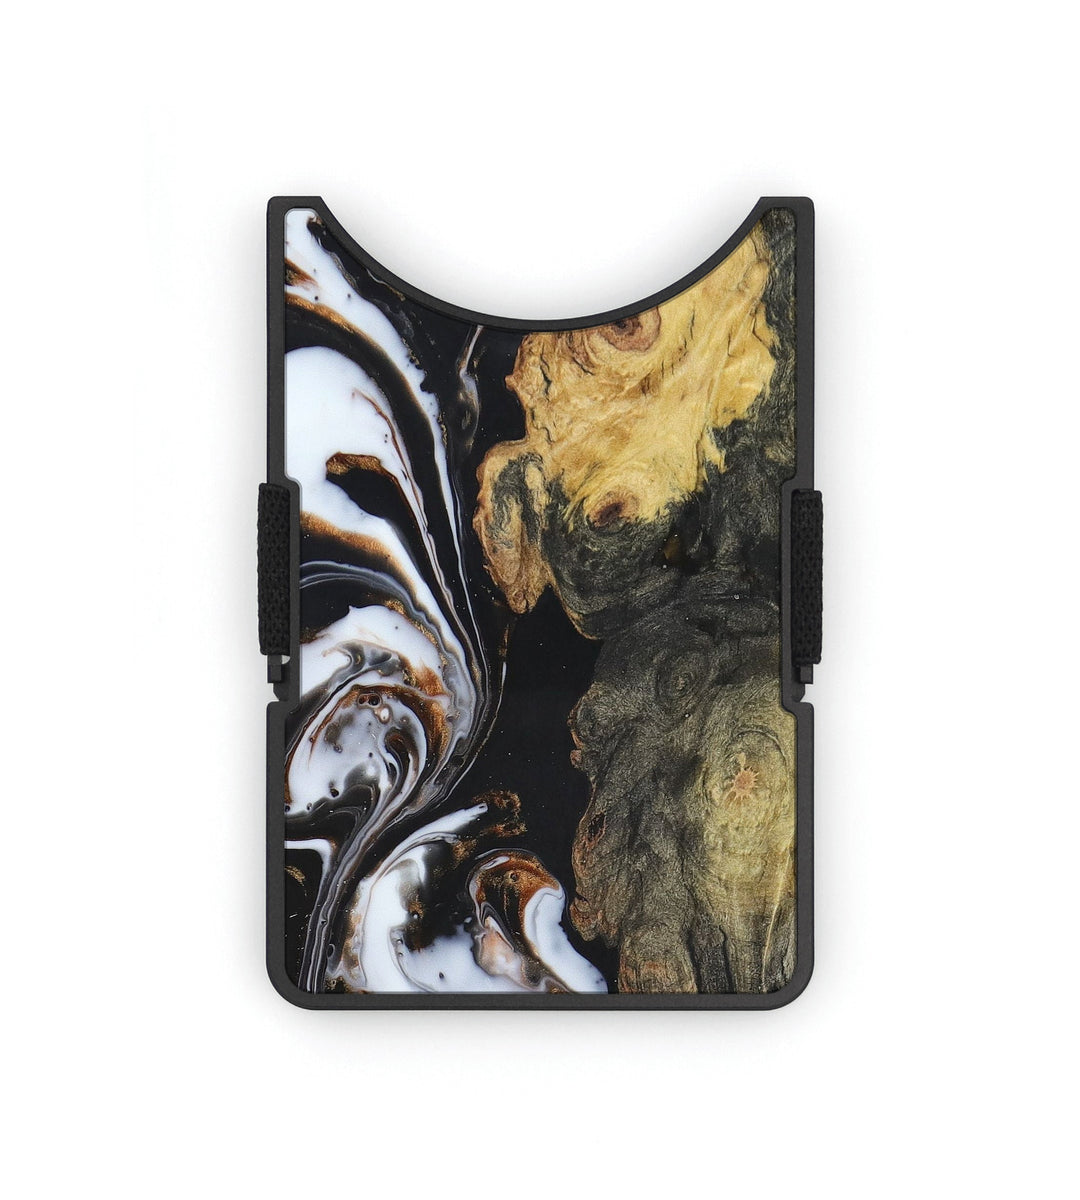 Alloy Wood+Resin Wallet - Petre (Black & White, 391574)